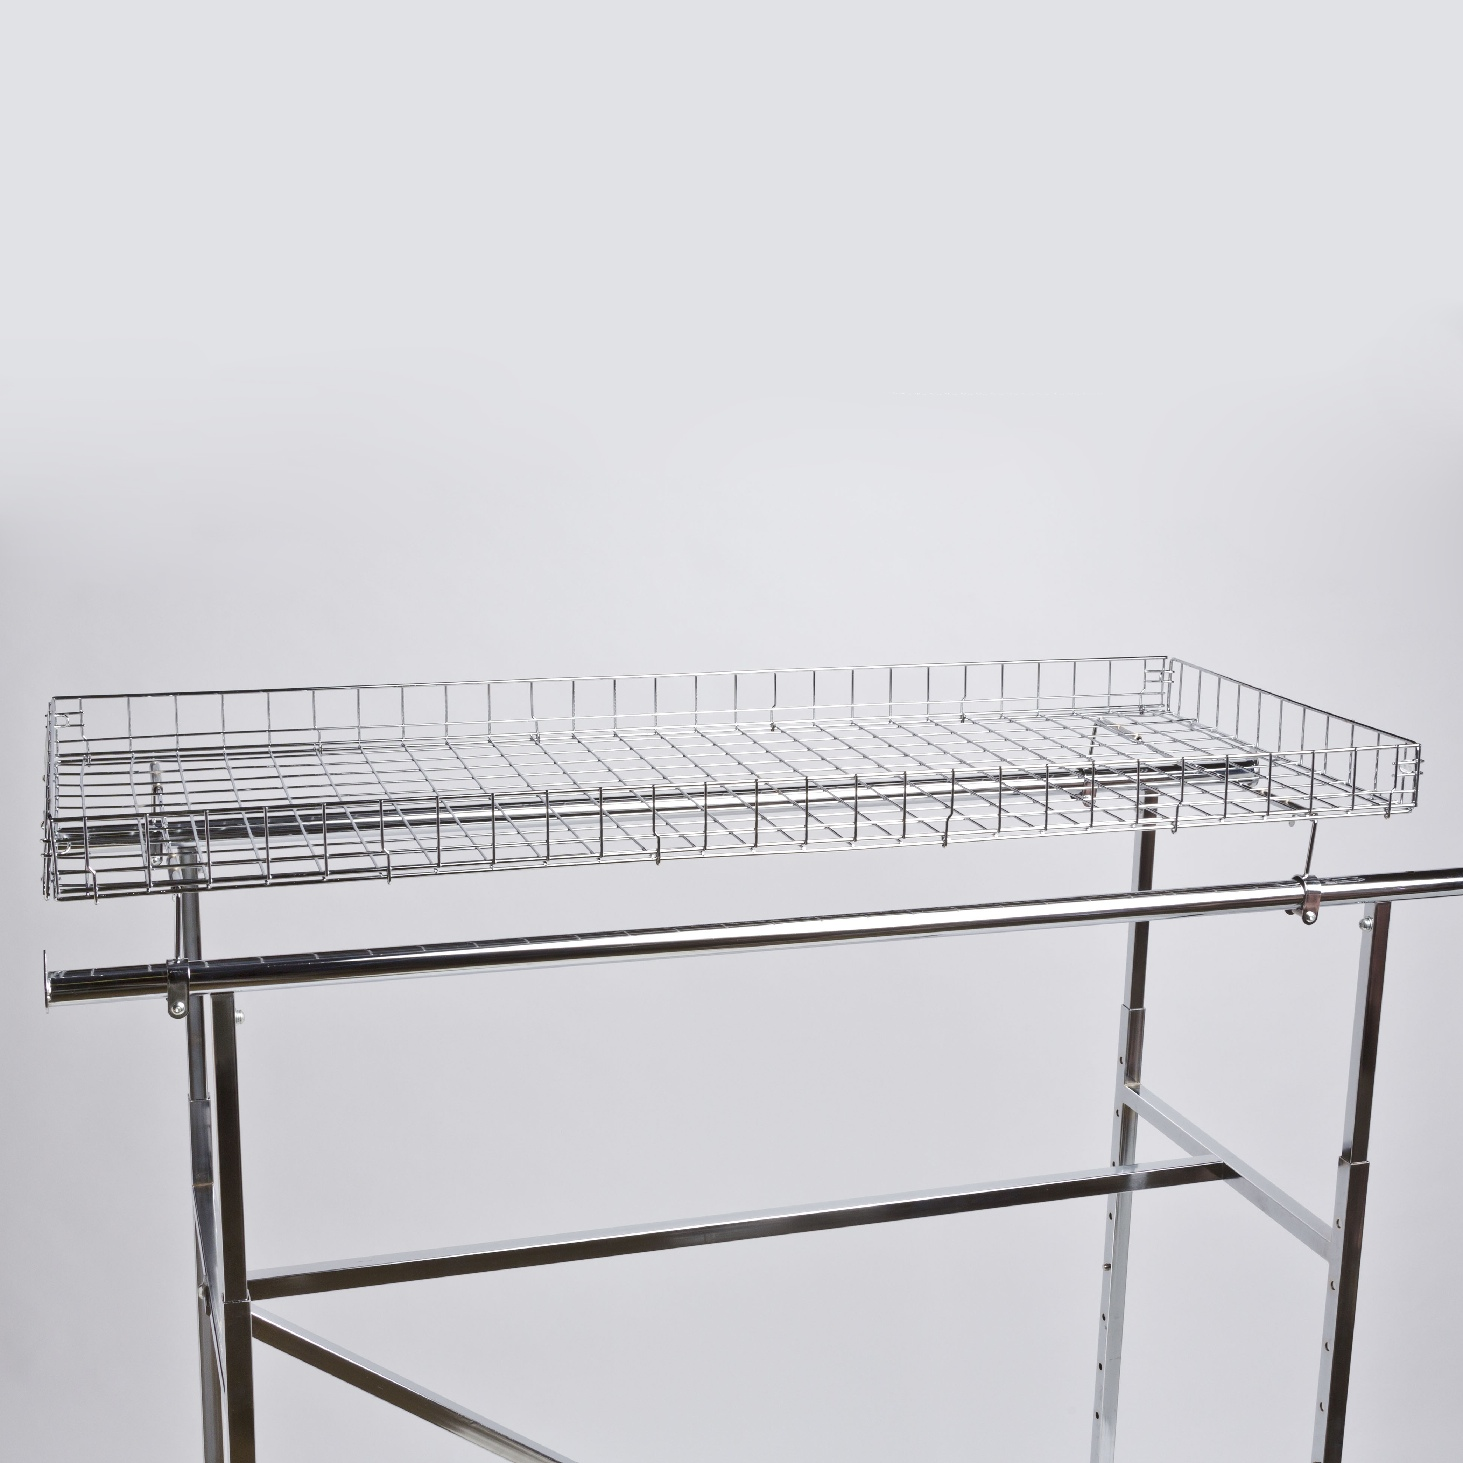 H Rack Basket Topper -| A&B Store Fixtures